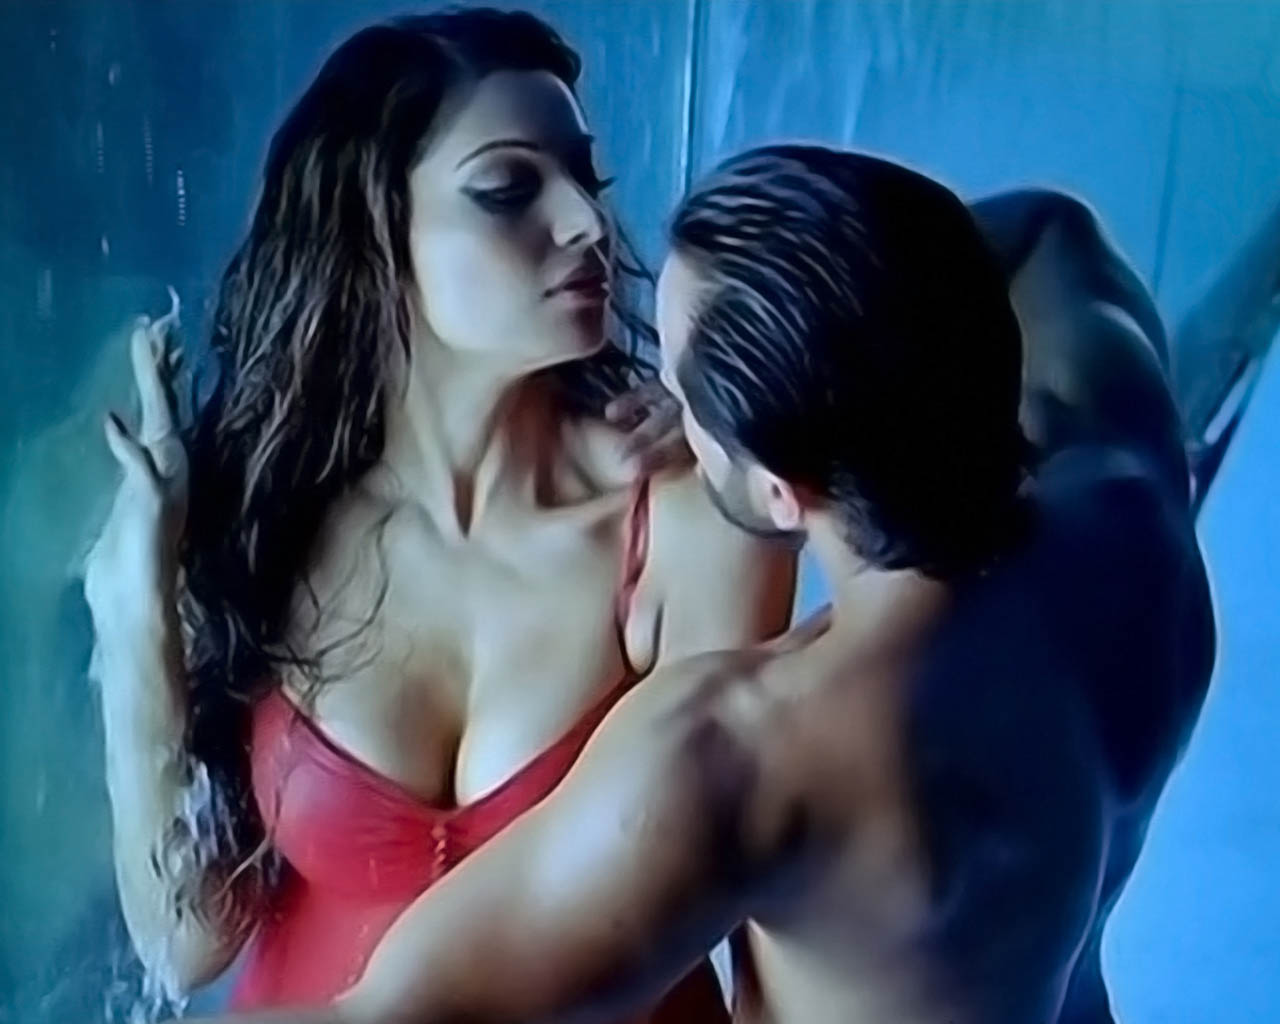 http://2.bp.blogspot.com/_eX5xKWfsiuo/TH4EgtbTZ9I/AAAAAAAACcM/Ywl43JwRYxo/s1600/Bipasha+Basu-super-Bed-Pics-Wallpaper-Picture-Psupero-Image-Scenes-Saif-Ali-Khan-Race-Latest-Actress-2010.jpg